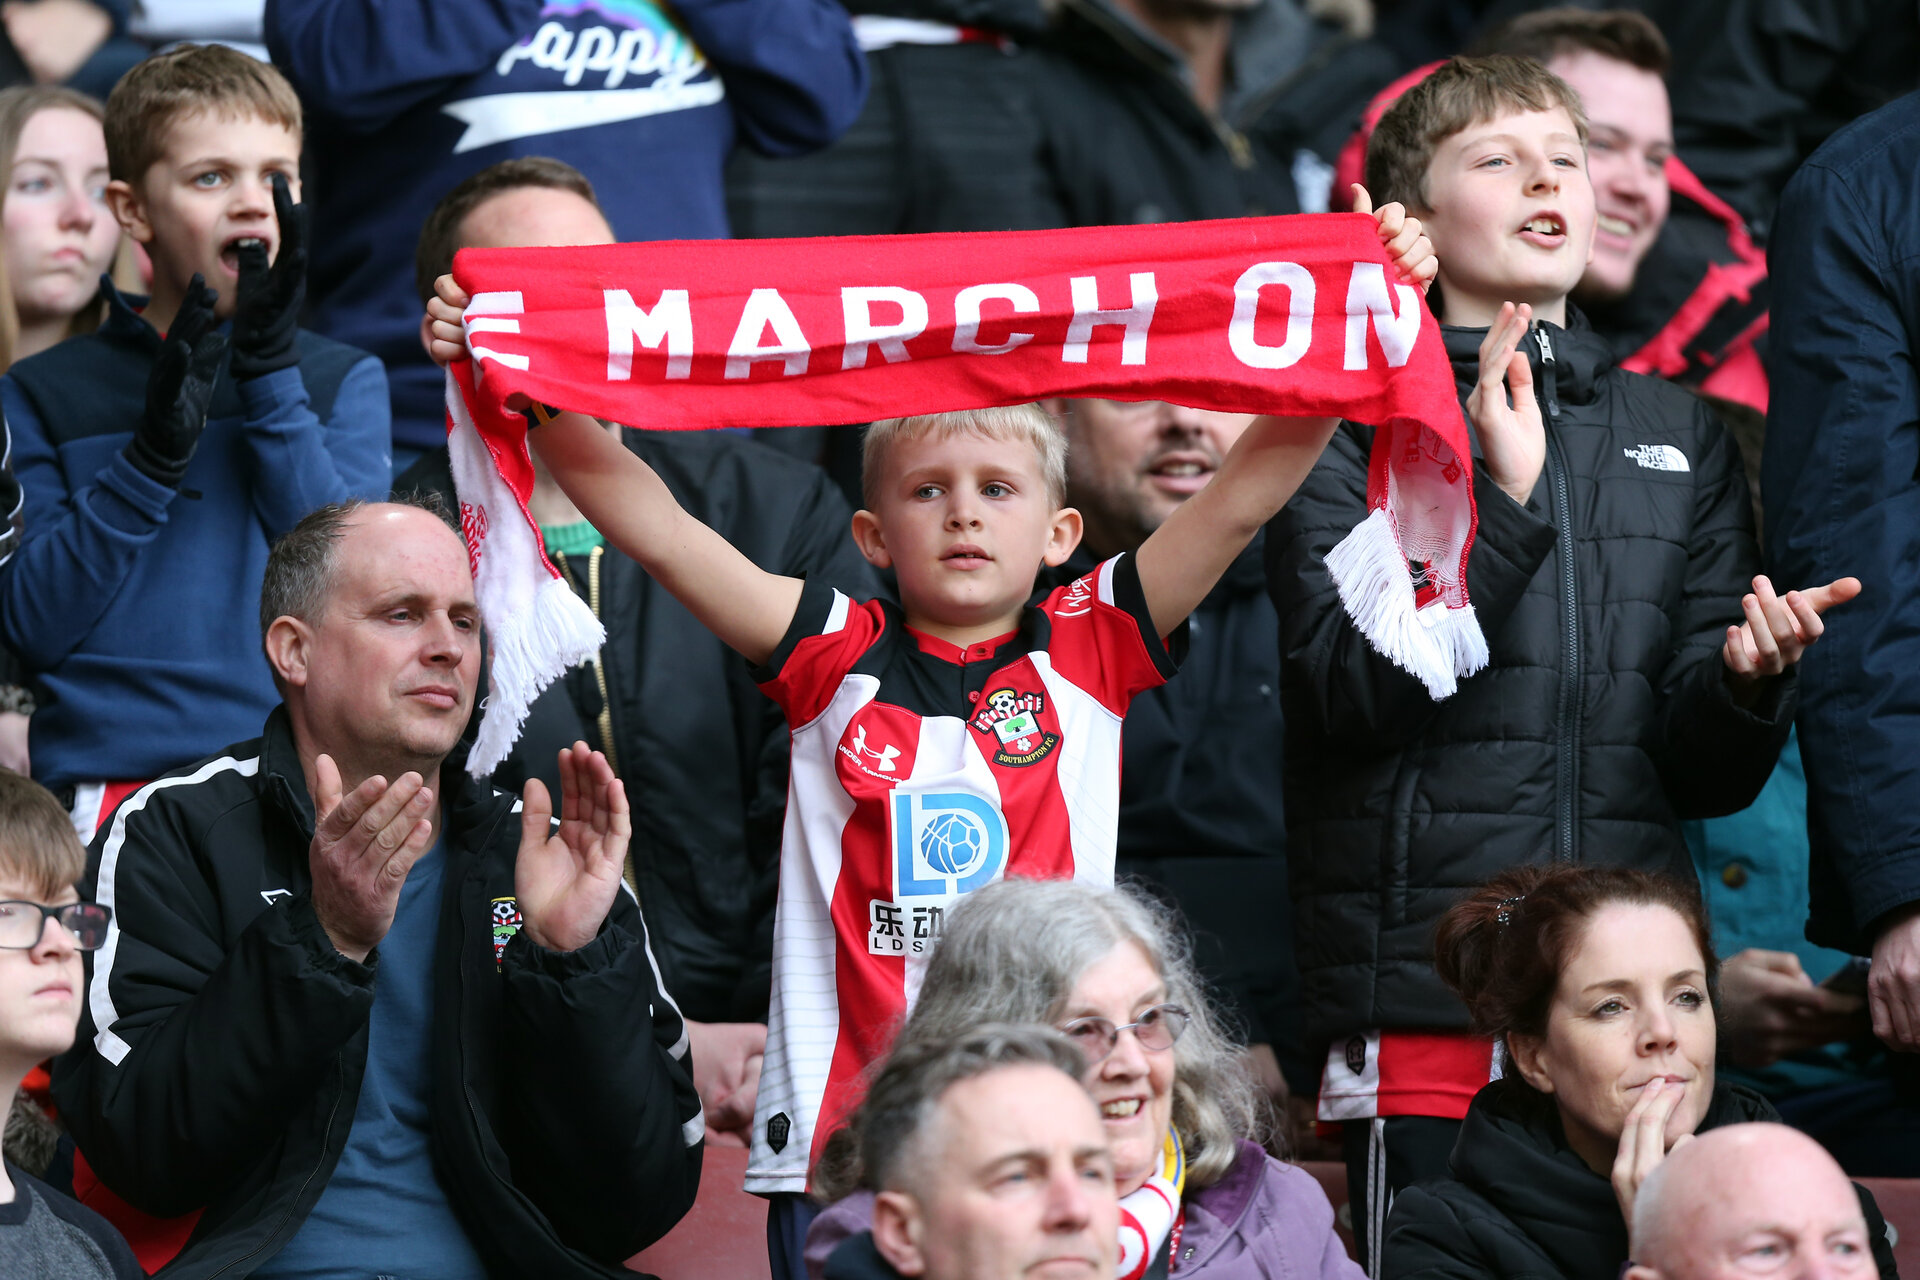 SOUTHAMPTON, ENGLAND - MARCH 07: Saints fans during the Premier League match between Southampton FC and Newcastle United at St Mary's Stadium on March 7, 2020 in Southampton, United Kingdom. (Photo by Chris Moorhouse/Southampton FC via Getty Images)